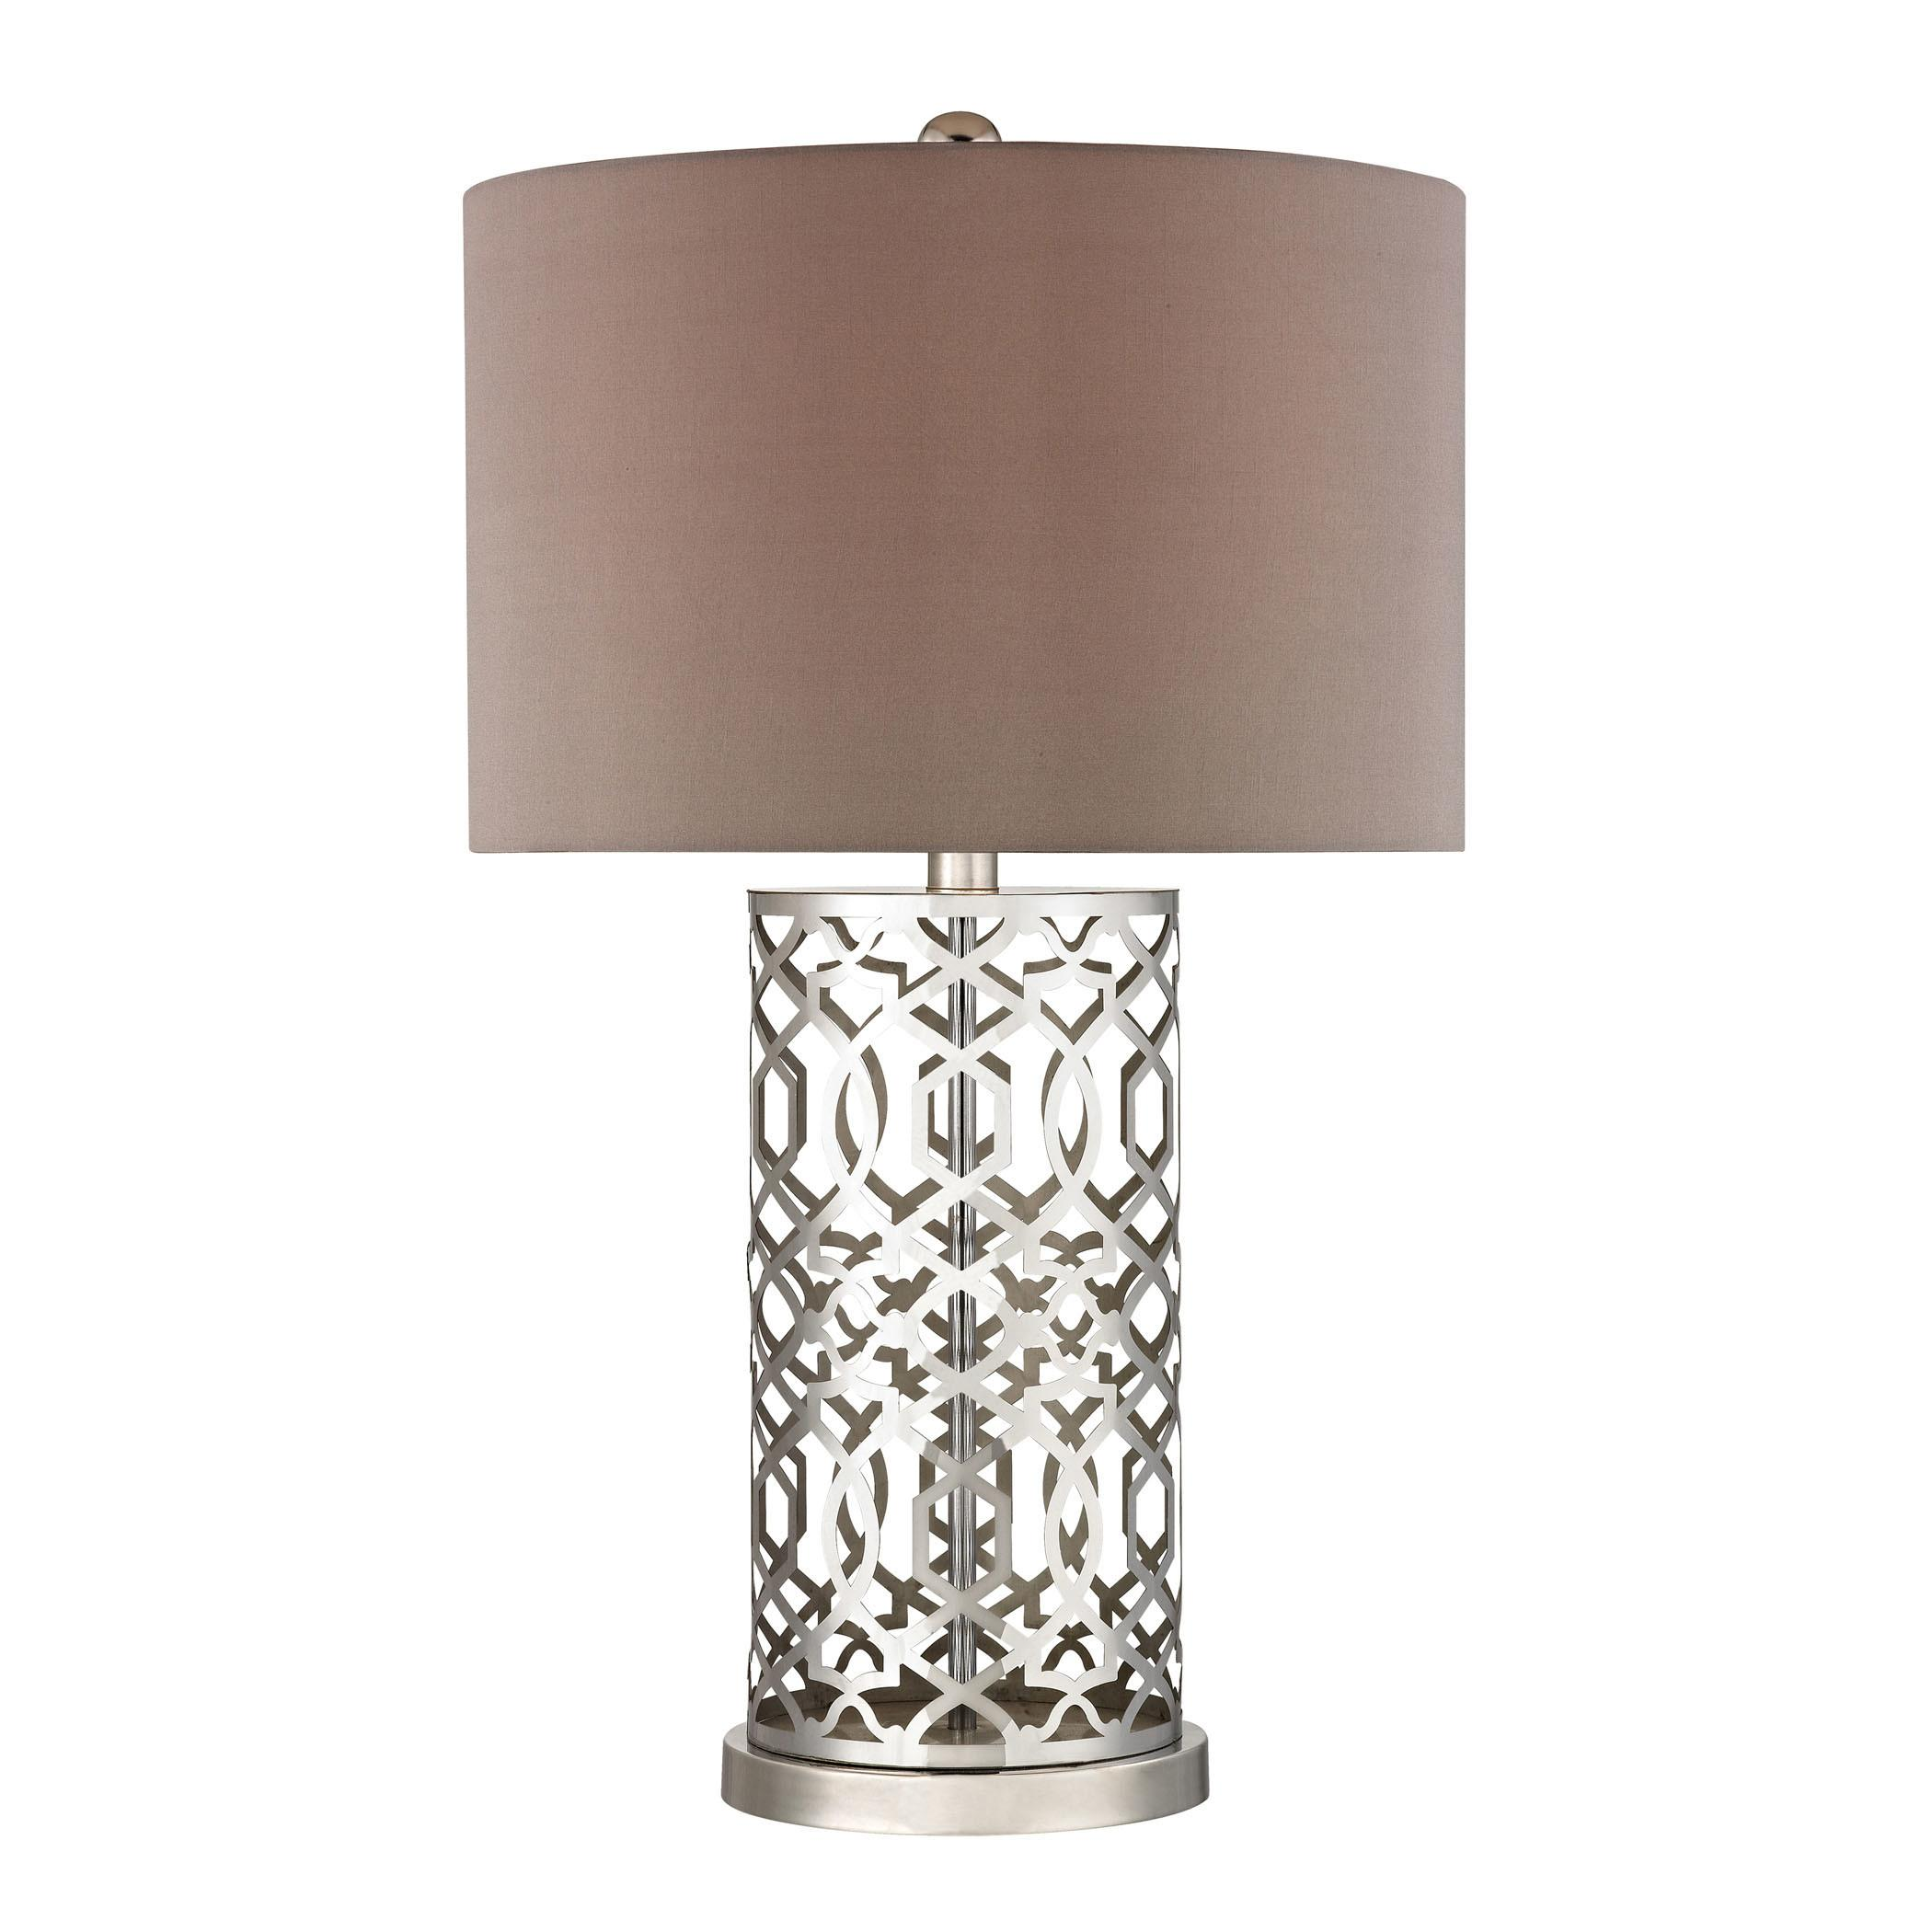 Laser Cut Metal Table Lamp Polished Nickel Dimond